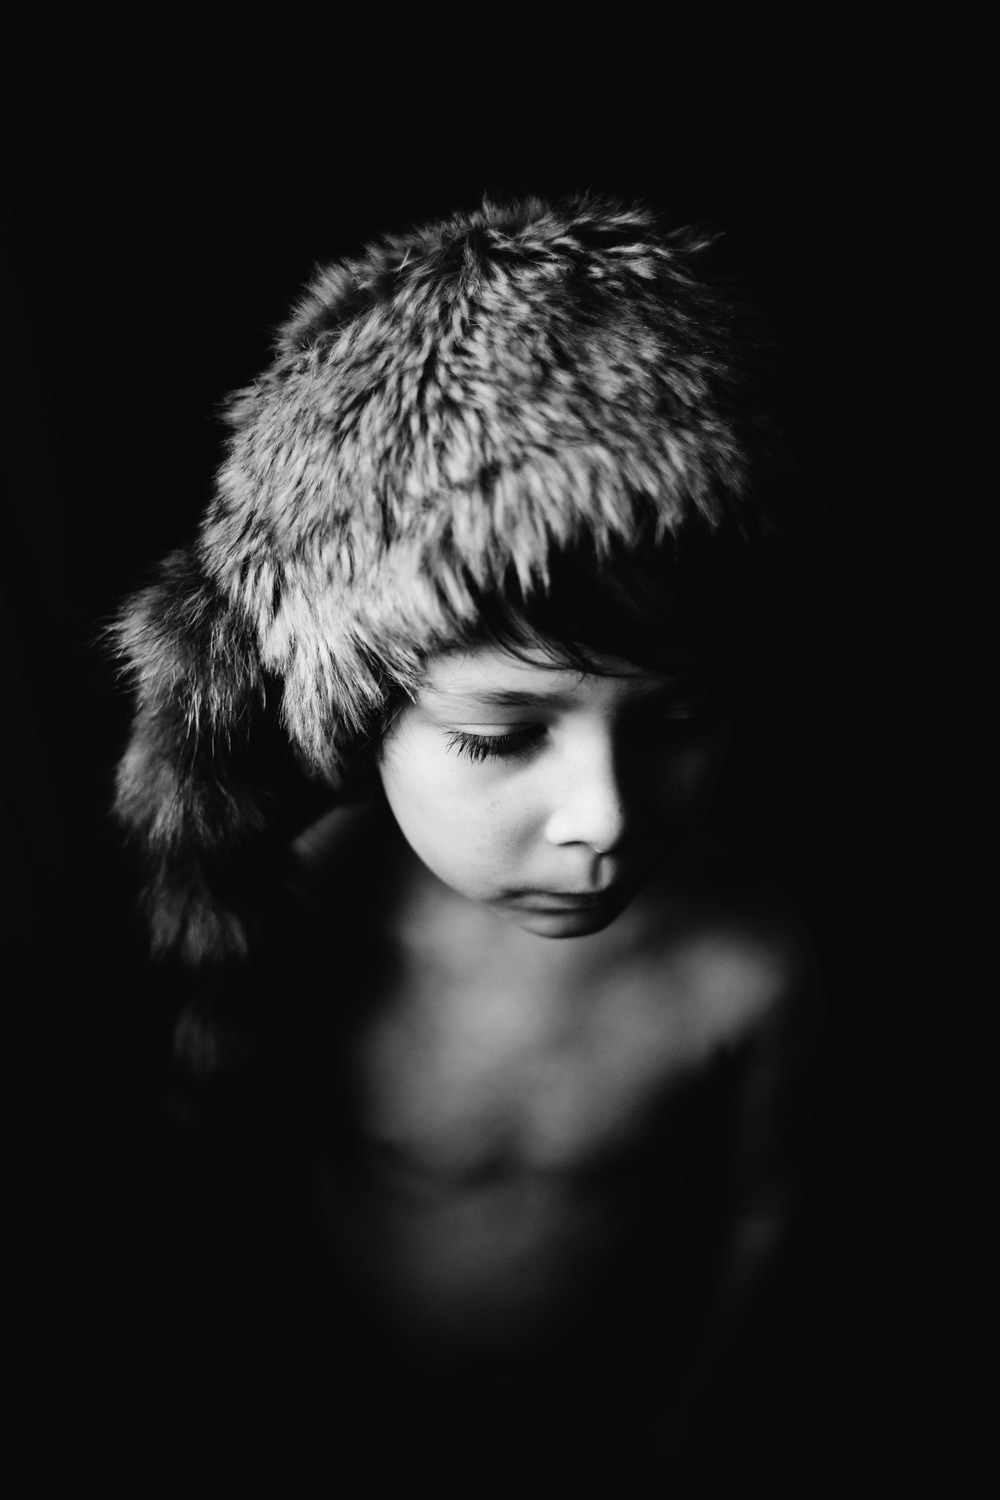 fine art child portrait | Jennifer Tippett Photography | Mozi Magazine selection